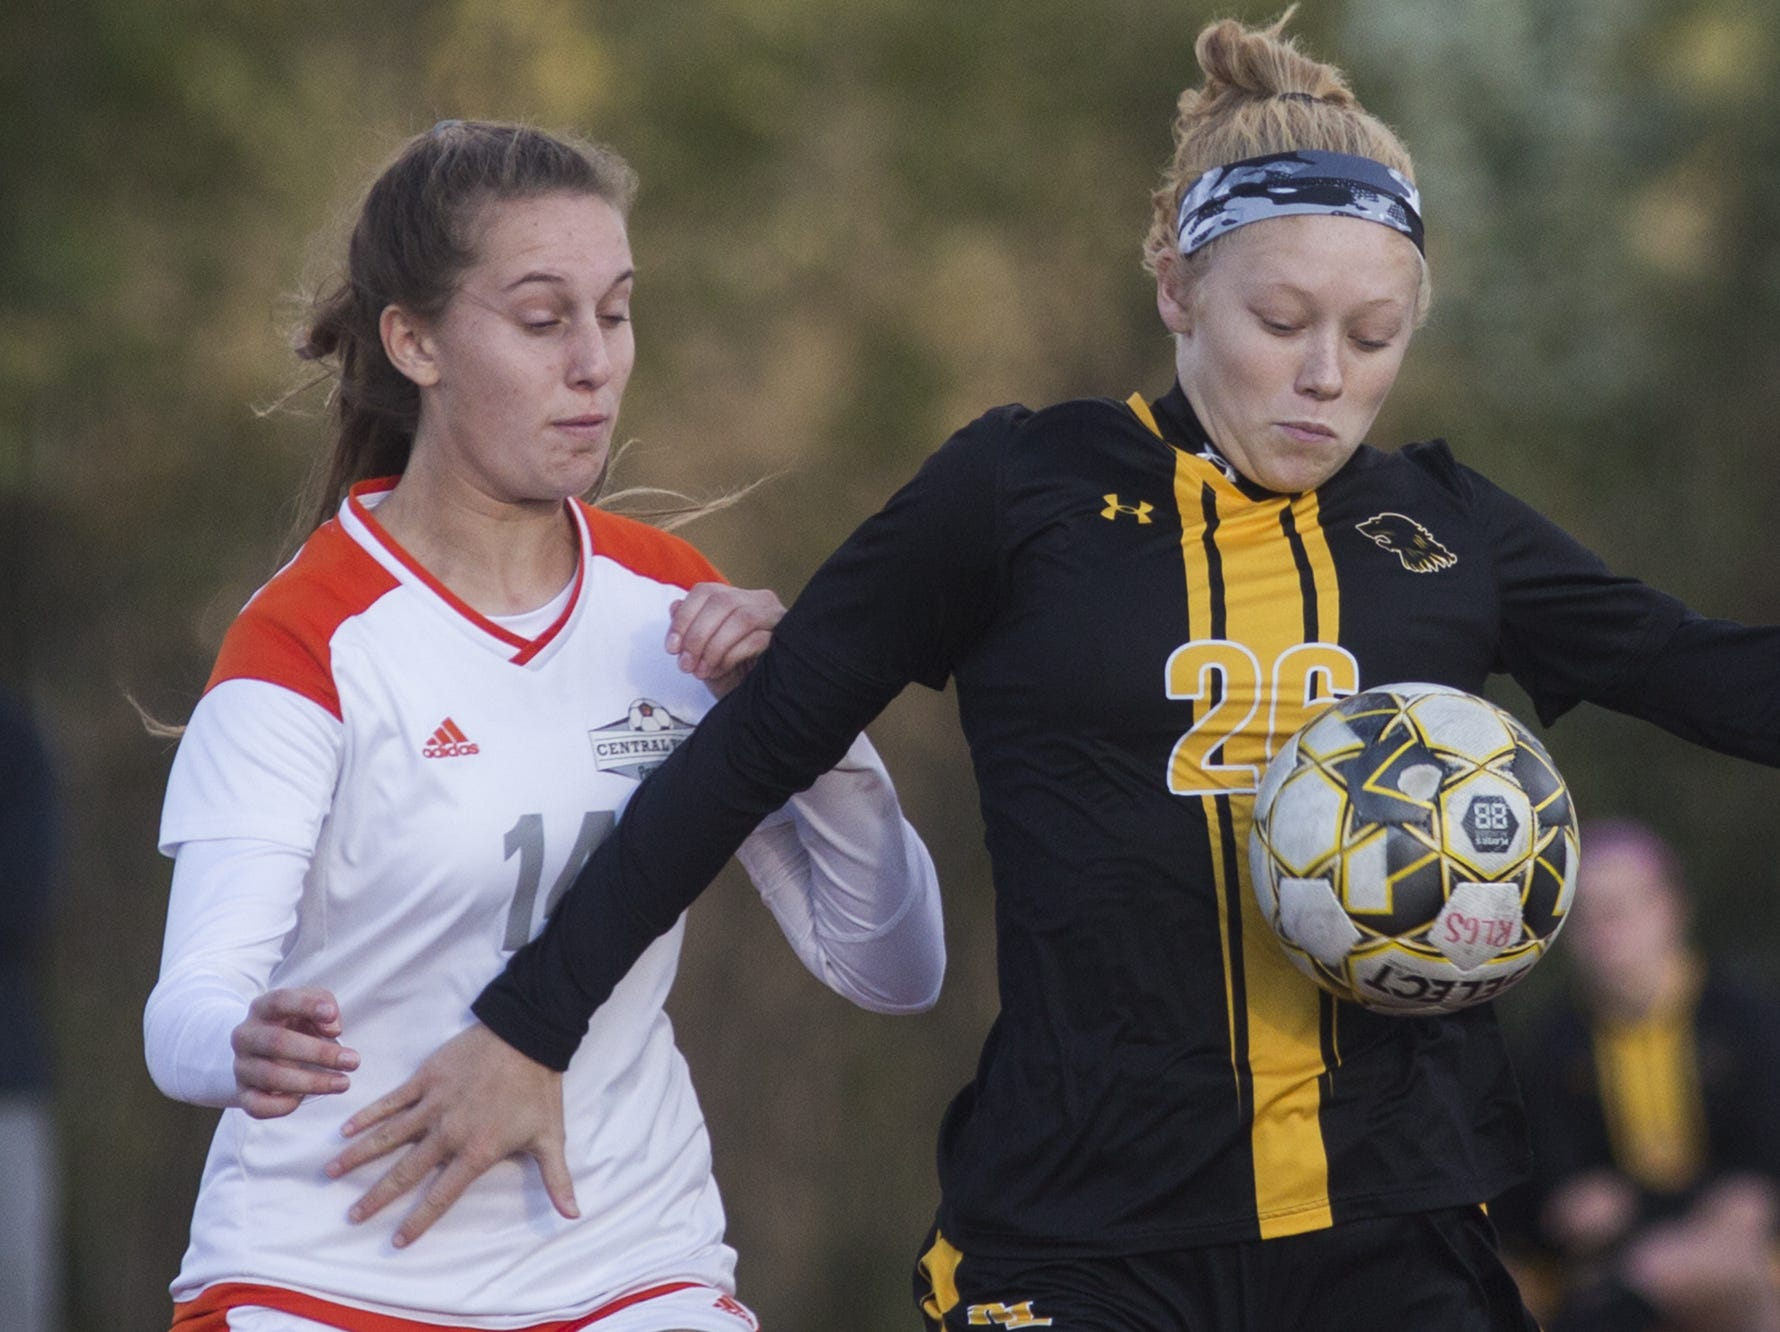 Central York's Abby Grigg, left, and Red Lion's Paige Frey compete for the ball. Central York defeats Red Lion 1-0 in the YAIAA girls' soccer championship game at Northeastern High School in Manchester, Saturday, October 20, 2018.